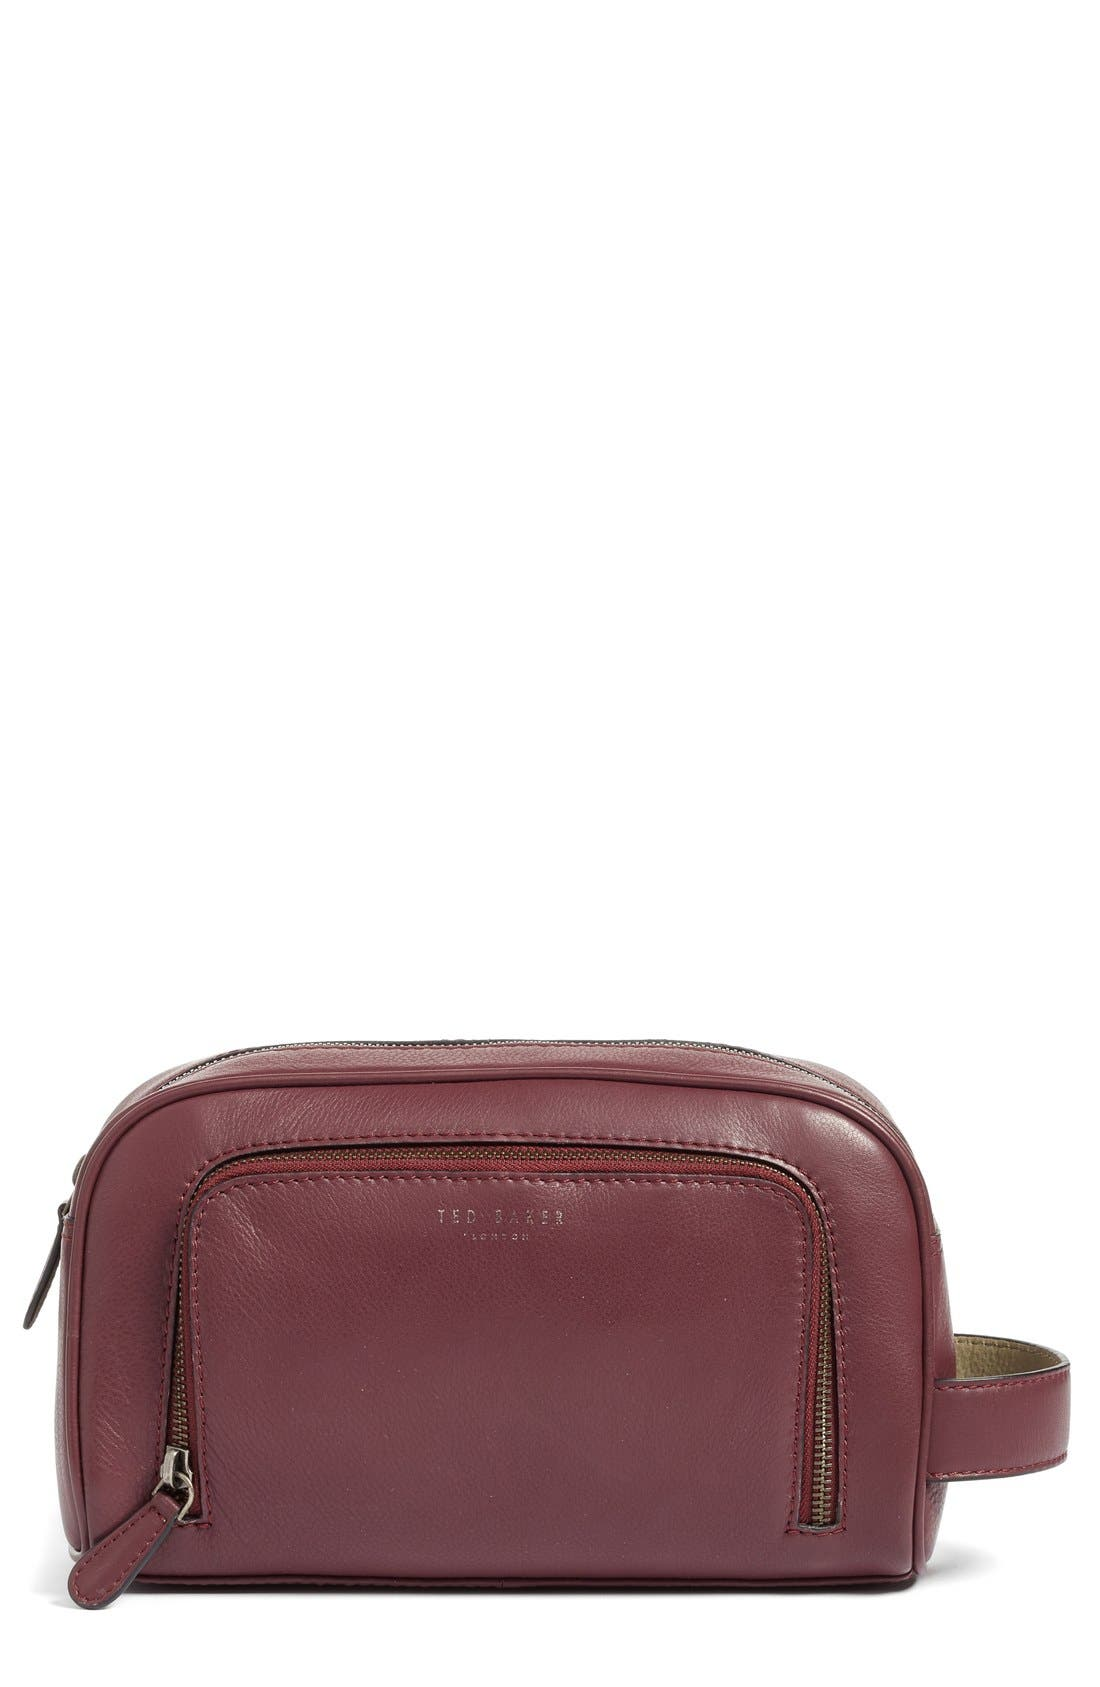 Ted Baker London 'Footsy' Leather Travel Kit